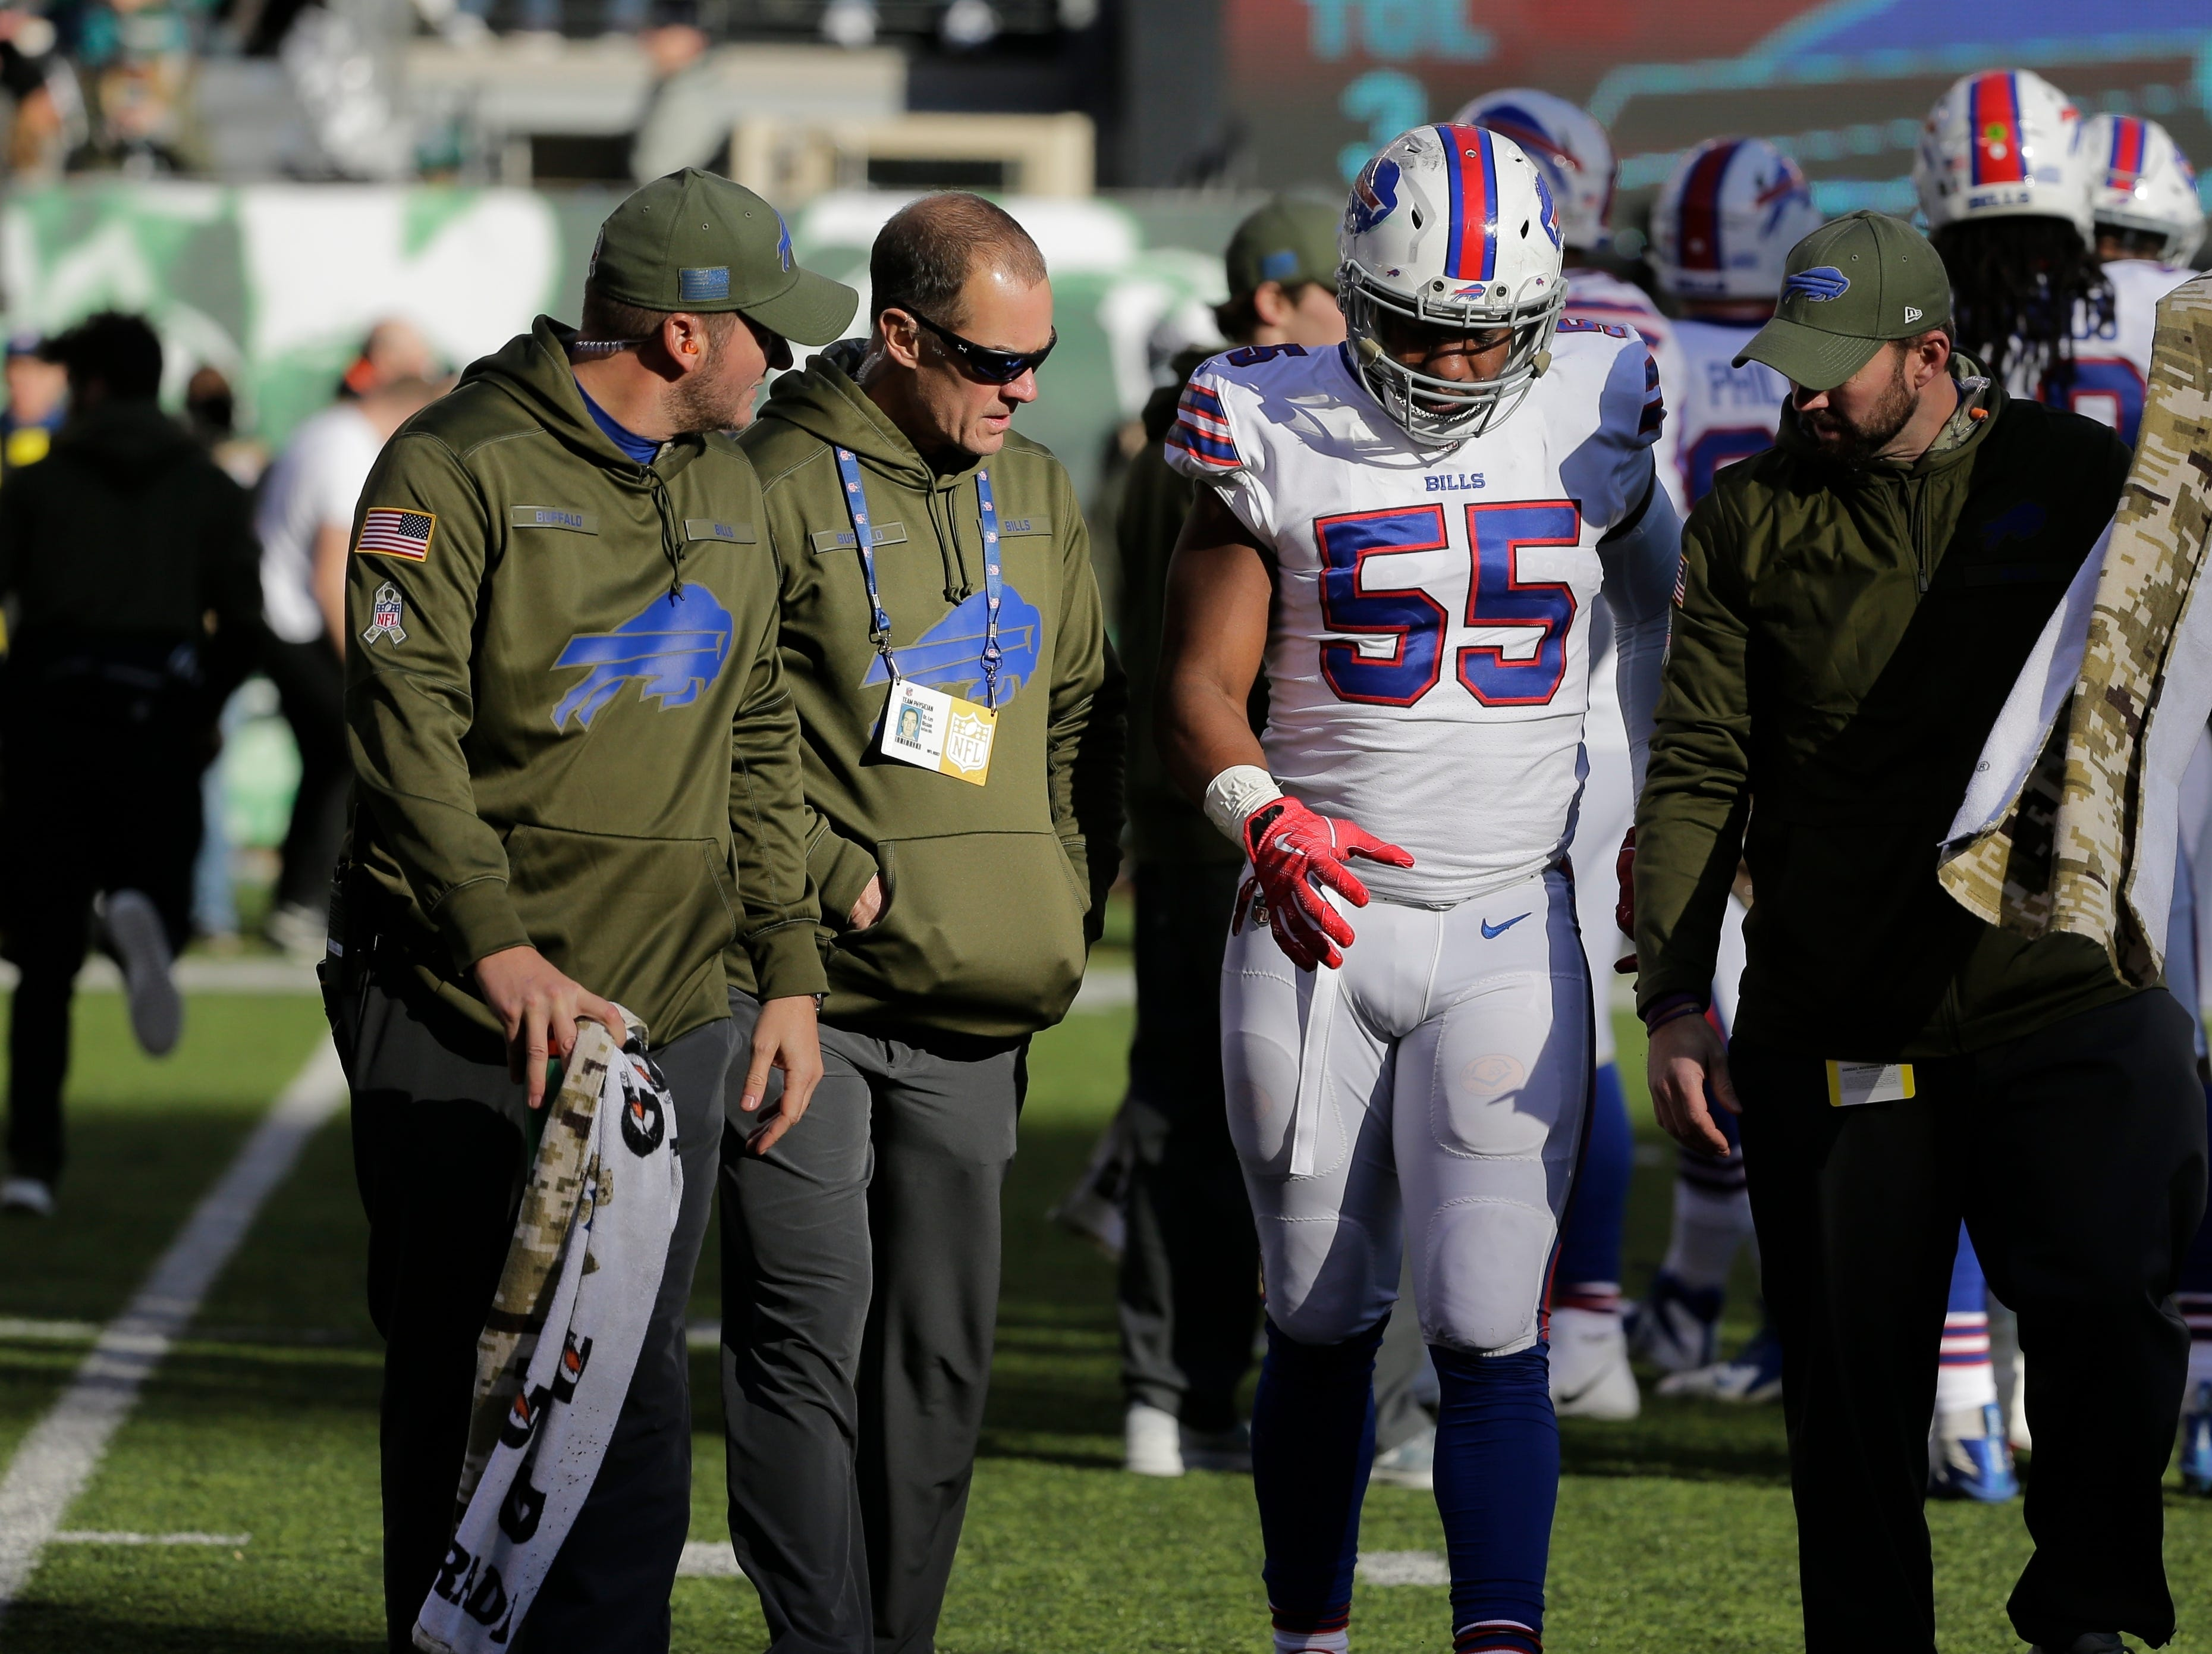 Buffalo Bills defensive end Jerry Hughes (55) is helped off the field after an injury against the New York Jets during the second quarter of an NFL football game, Sunday, Nov. 11, 2018, in East Rutherford, N.J. (AP Photo/Seth Wenig)